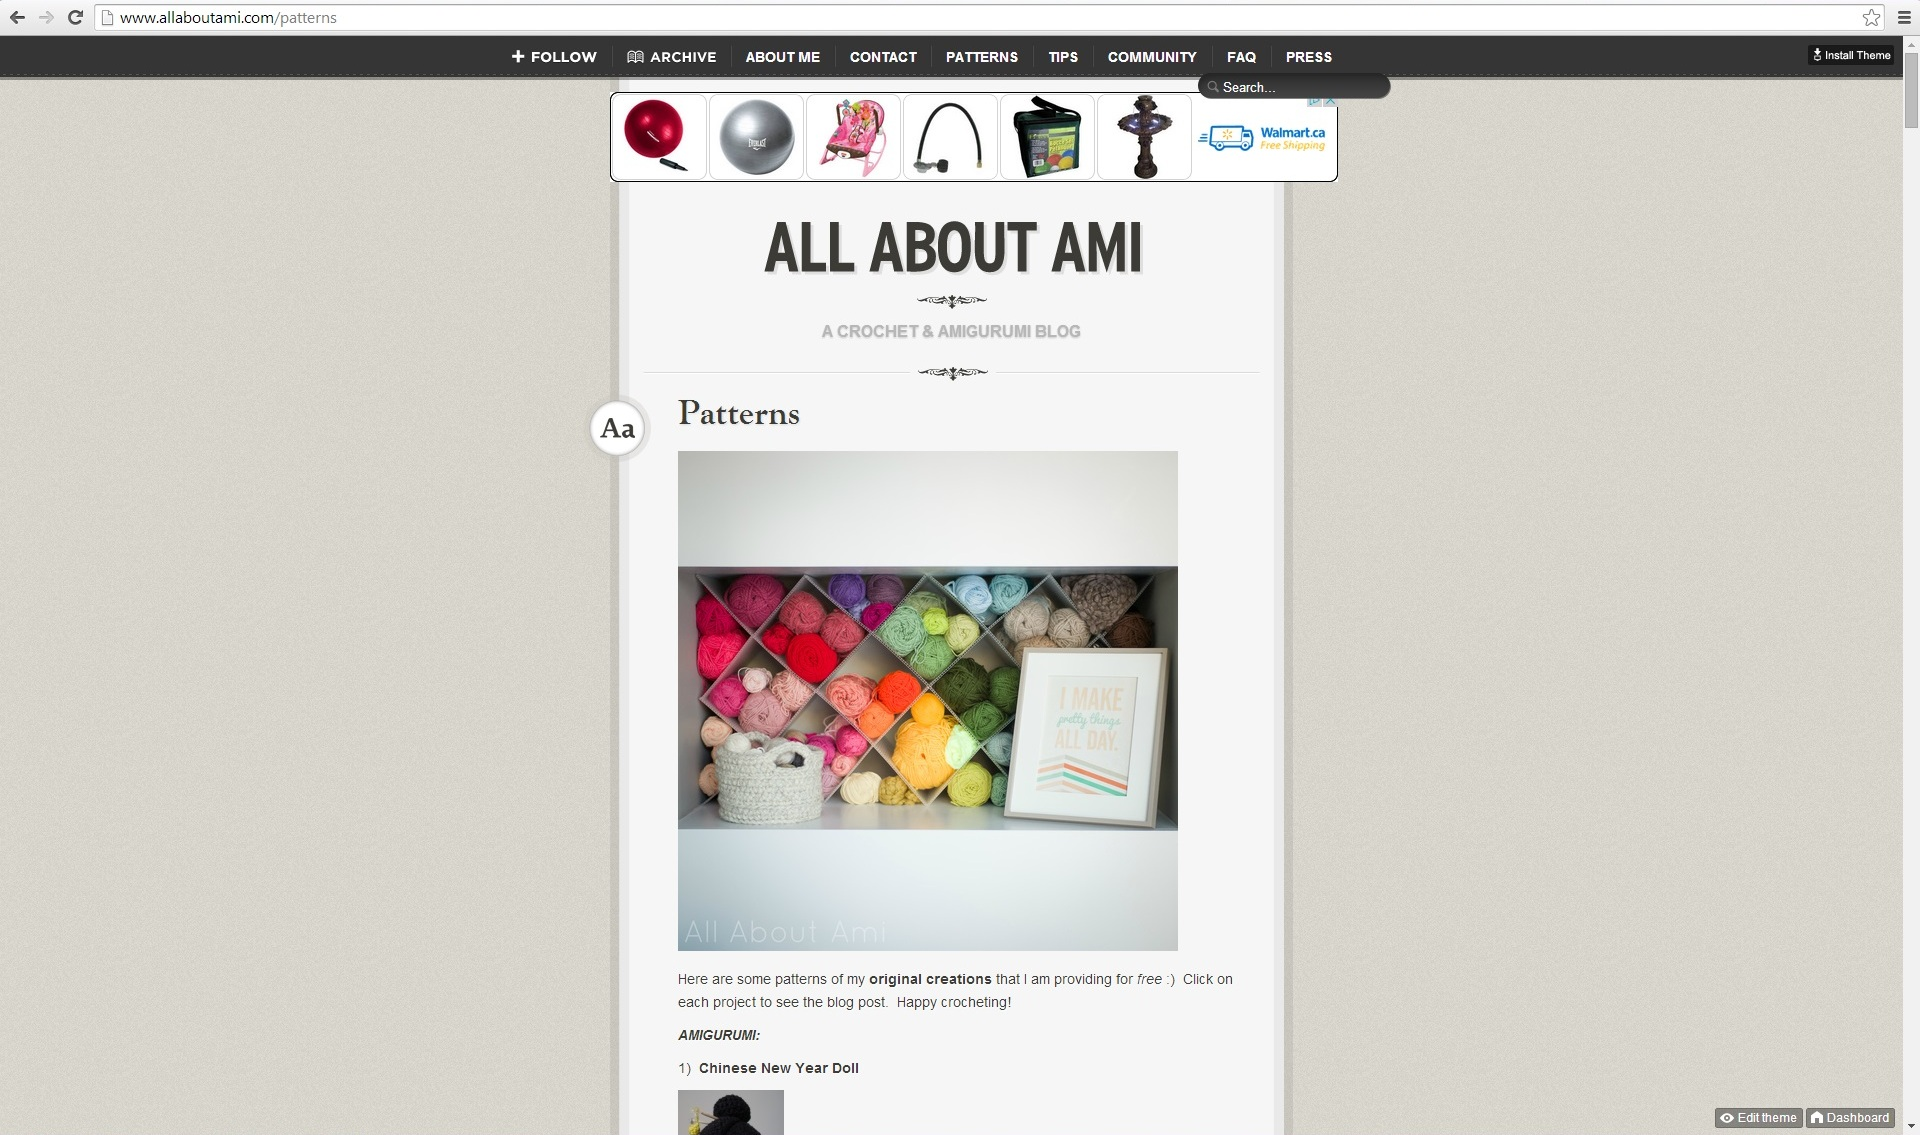 New Blog Design - All About Ami